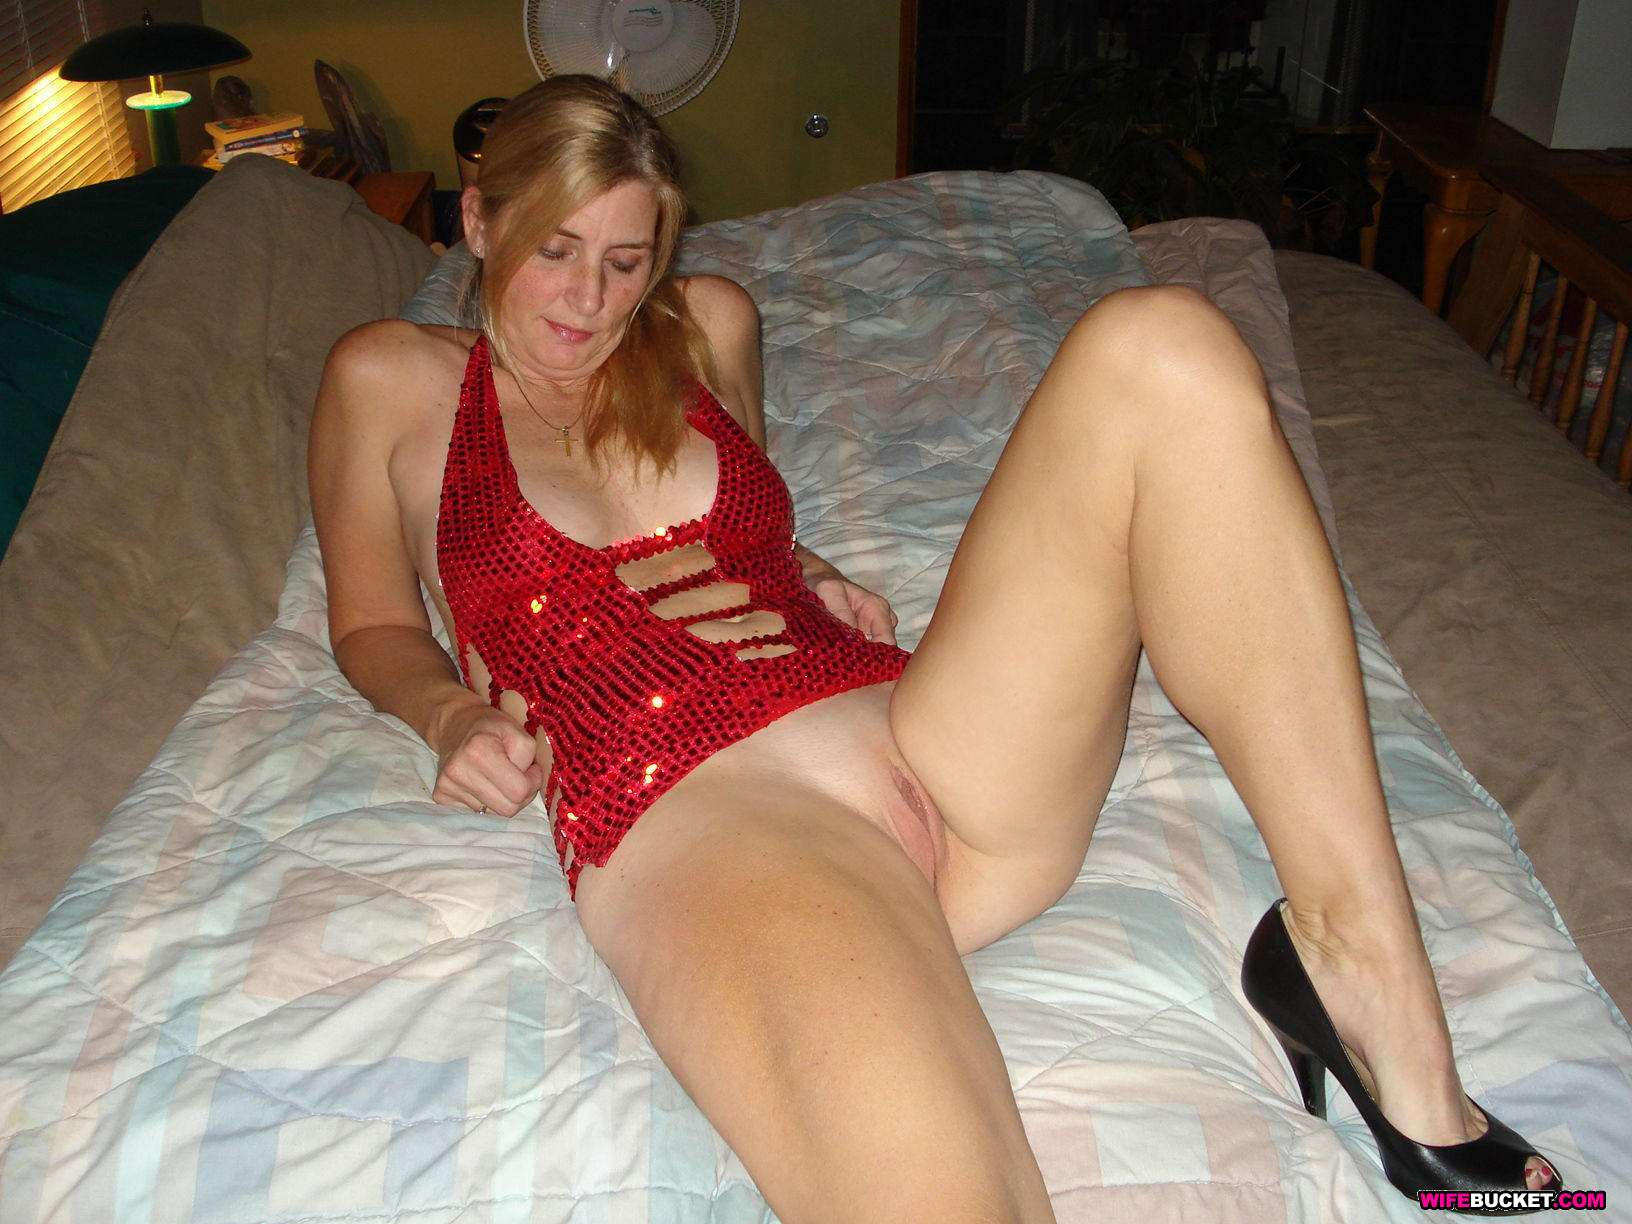 wife bucket sex gif tumblr porn gallery amateur wife sex pics homemade photos wife